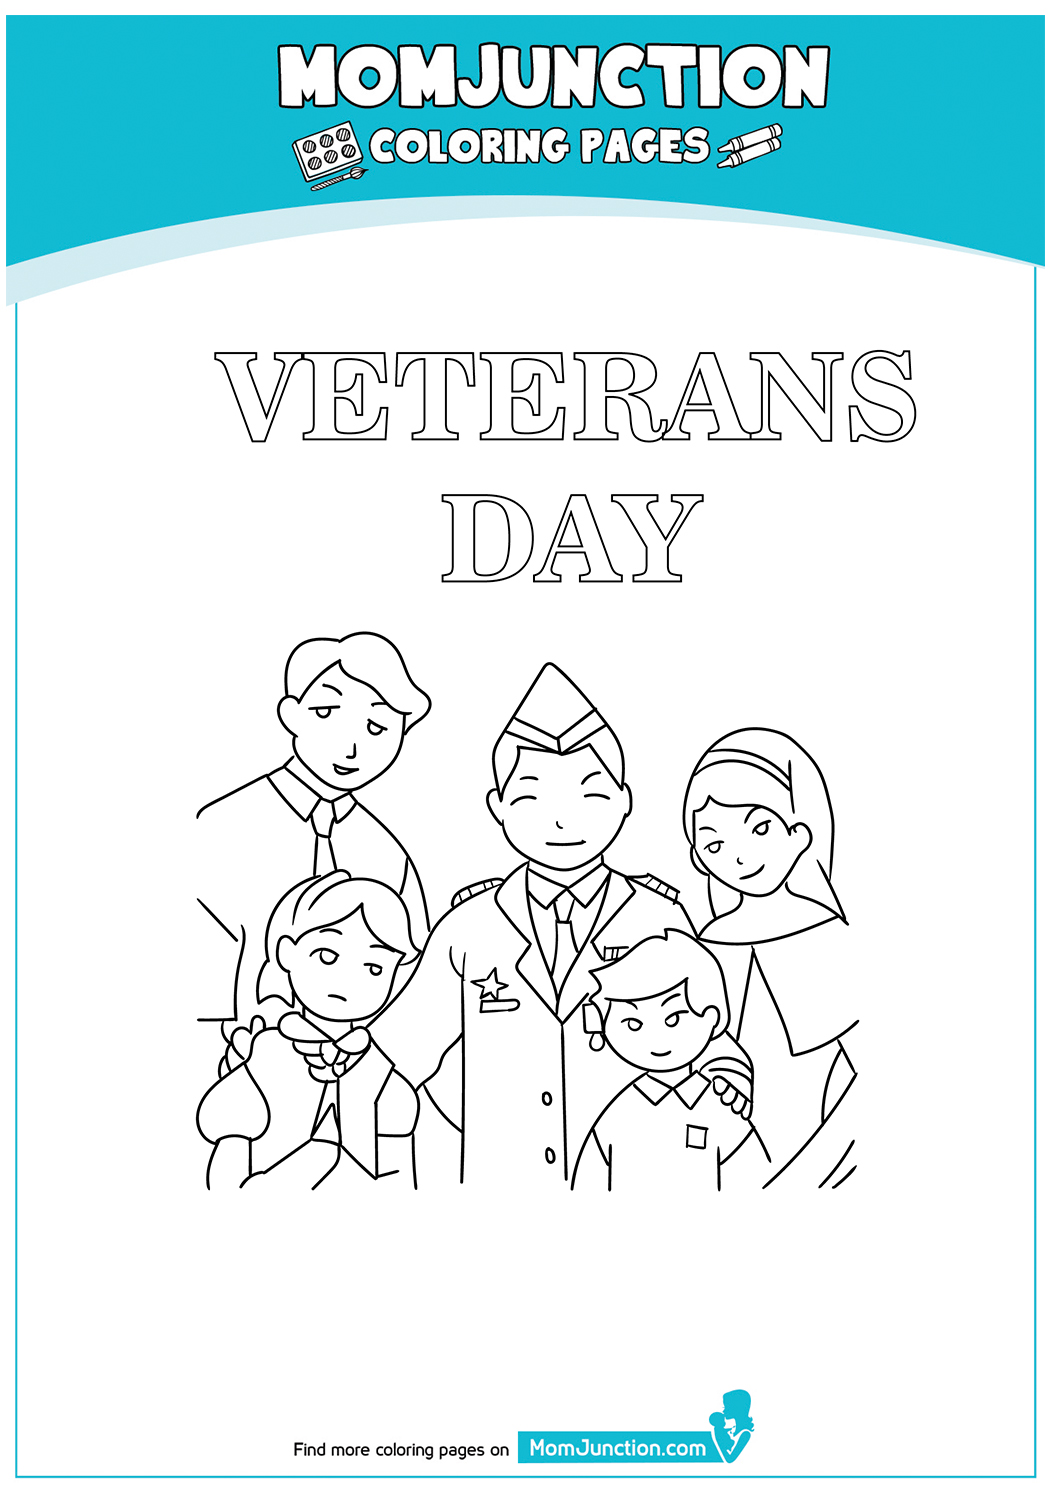 The-Veterans-Day-17